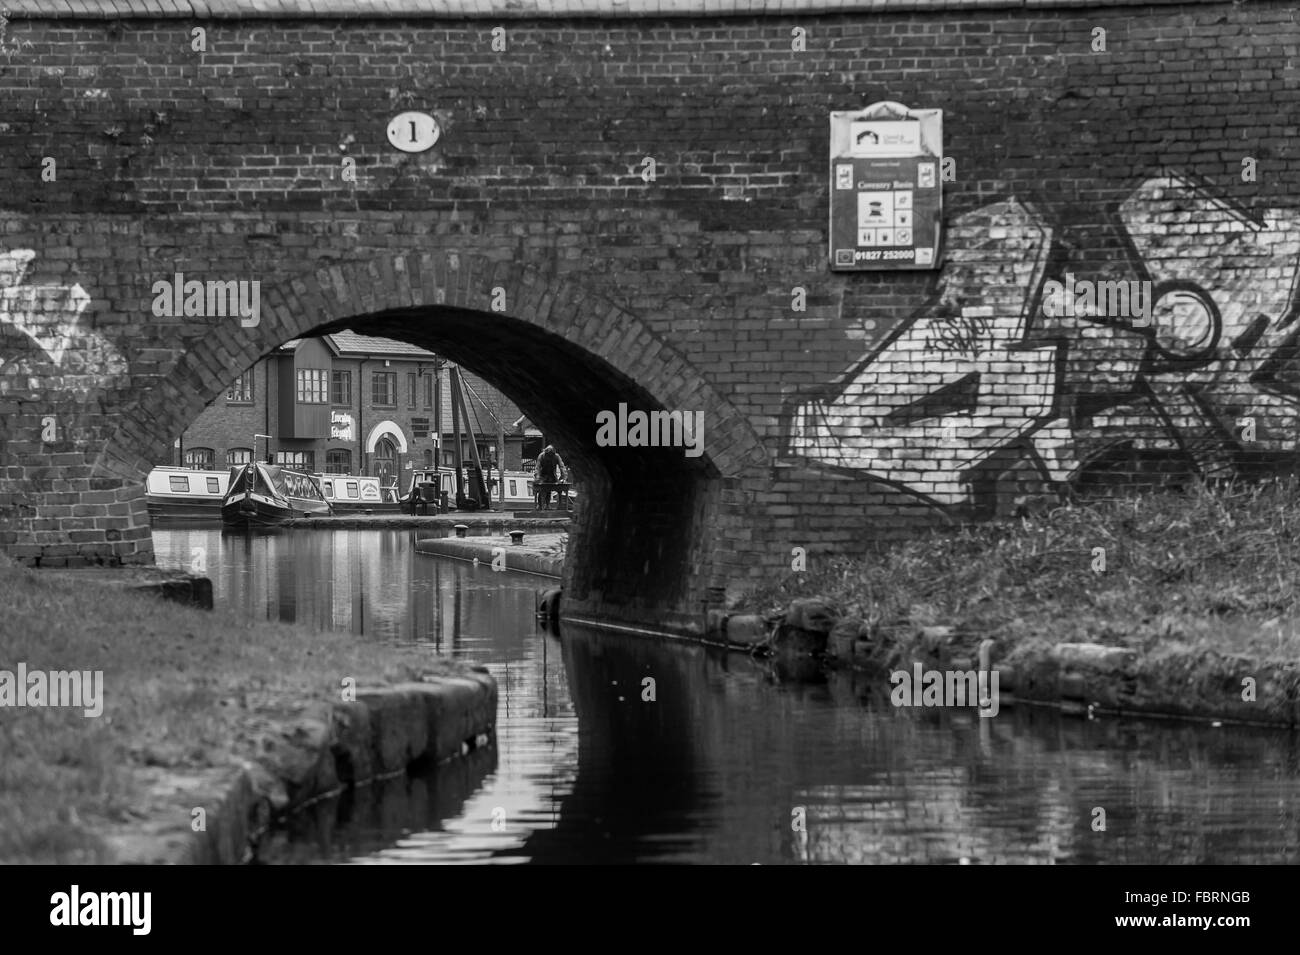 Coventry Canal Basin as seen through a graffiti covered bridge number 1. - Stock Image